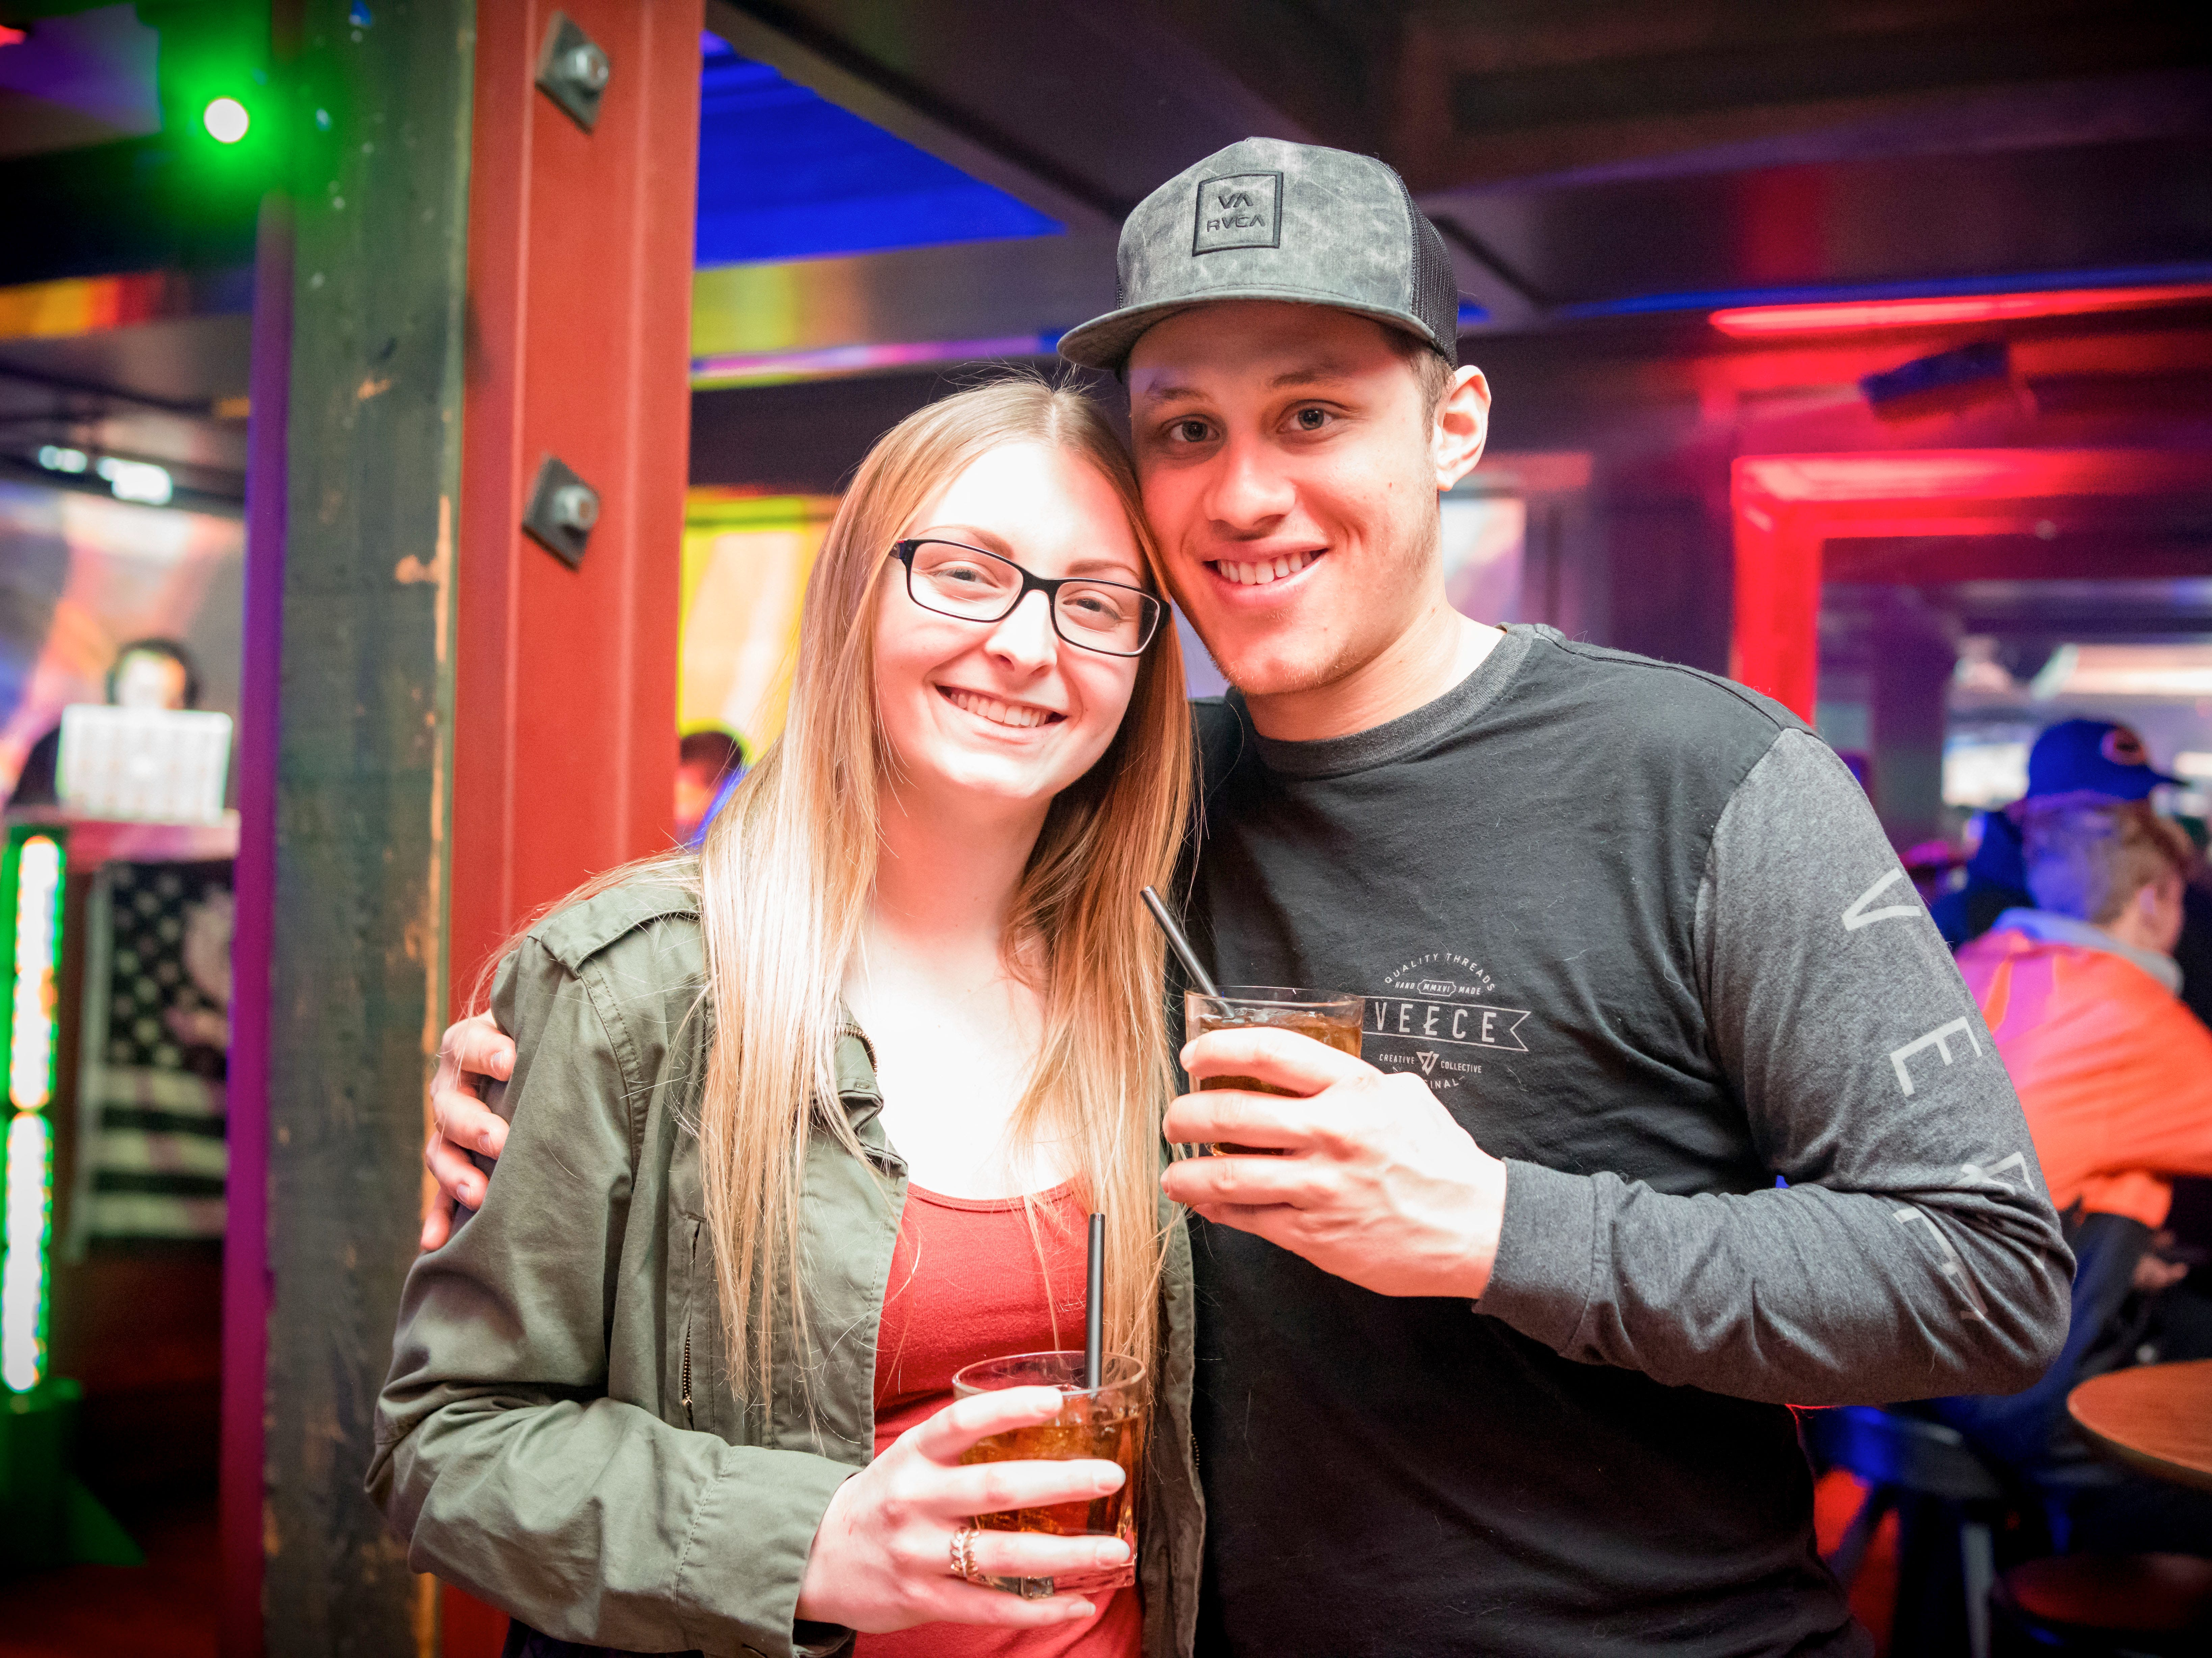 Haley McDaniel, 22, and Jarrod Krigel, 23, both of Des Moines, having a fun time, Friday, Dec. 14 at Heroes.